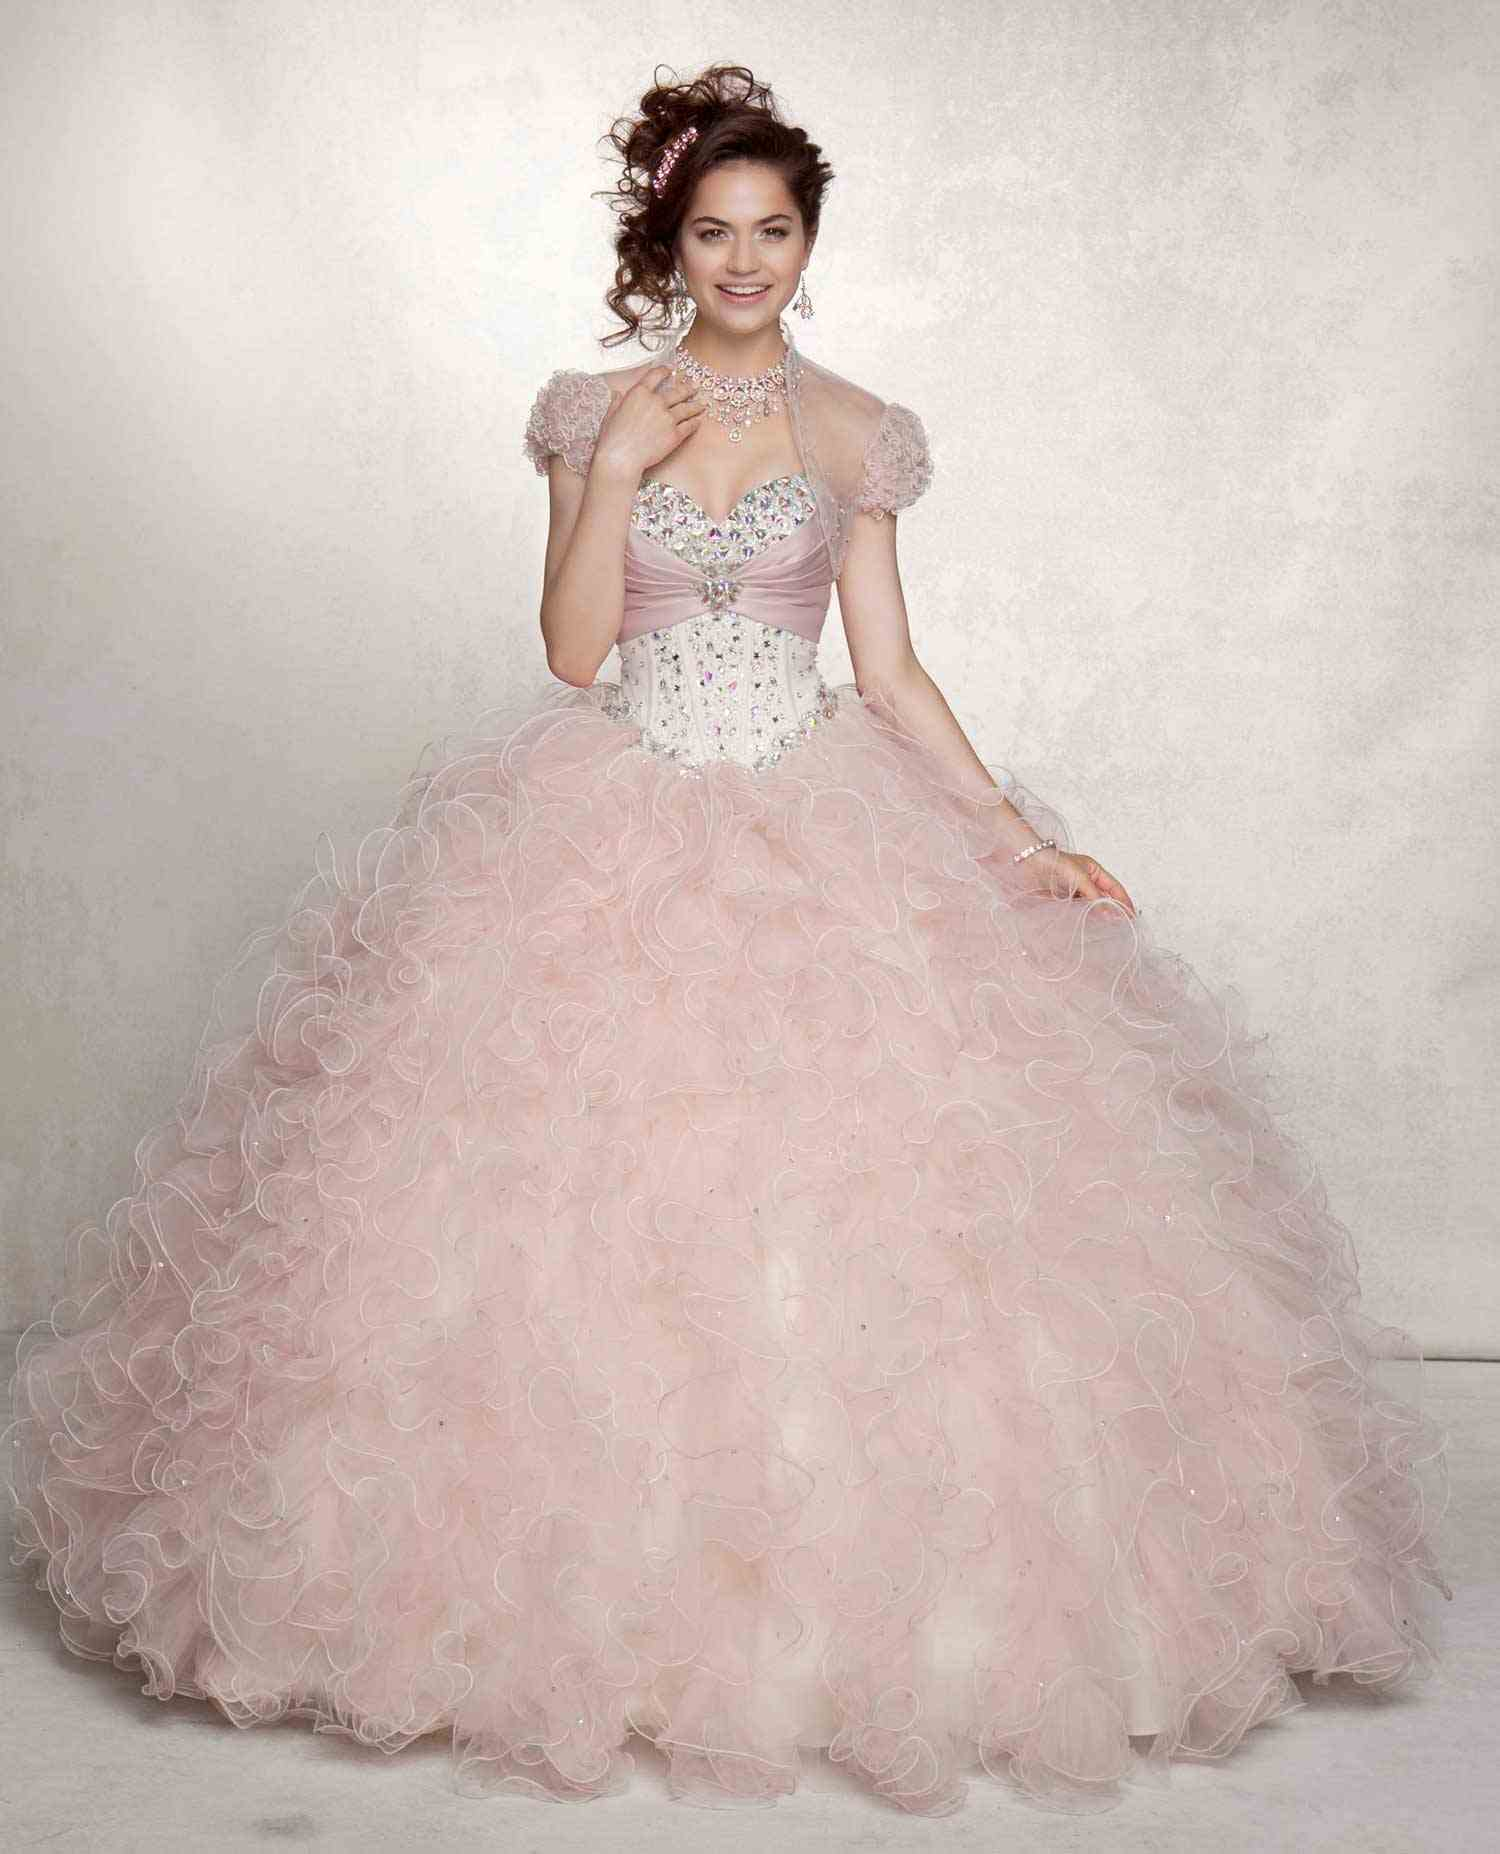 Vizcaya 88043 Quinceanera DressQuinceanera Dresses 2014 Pink And White